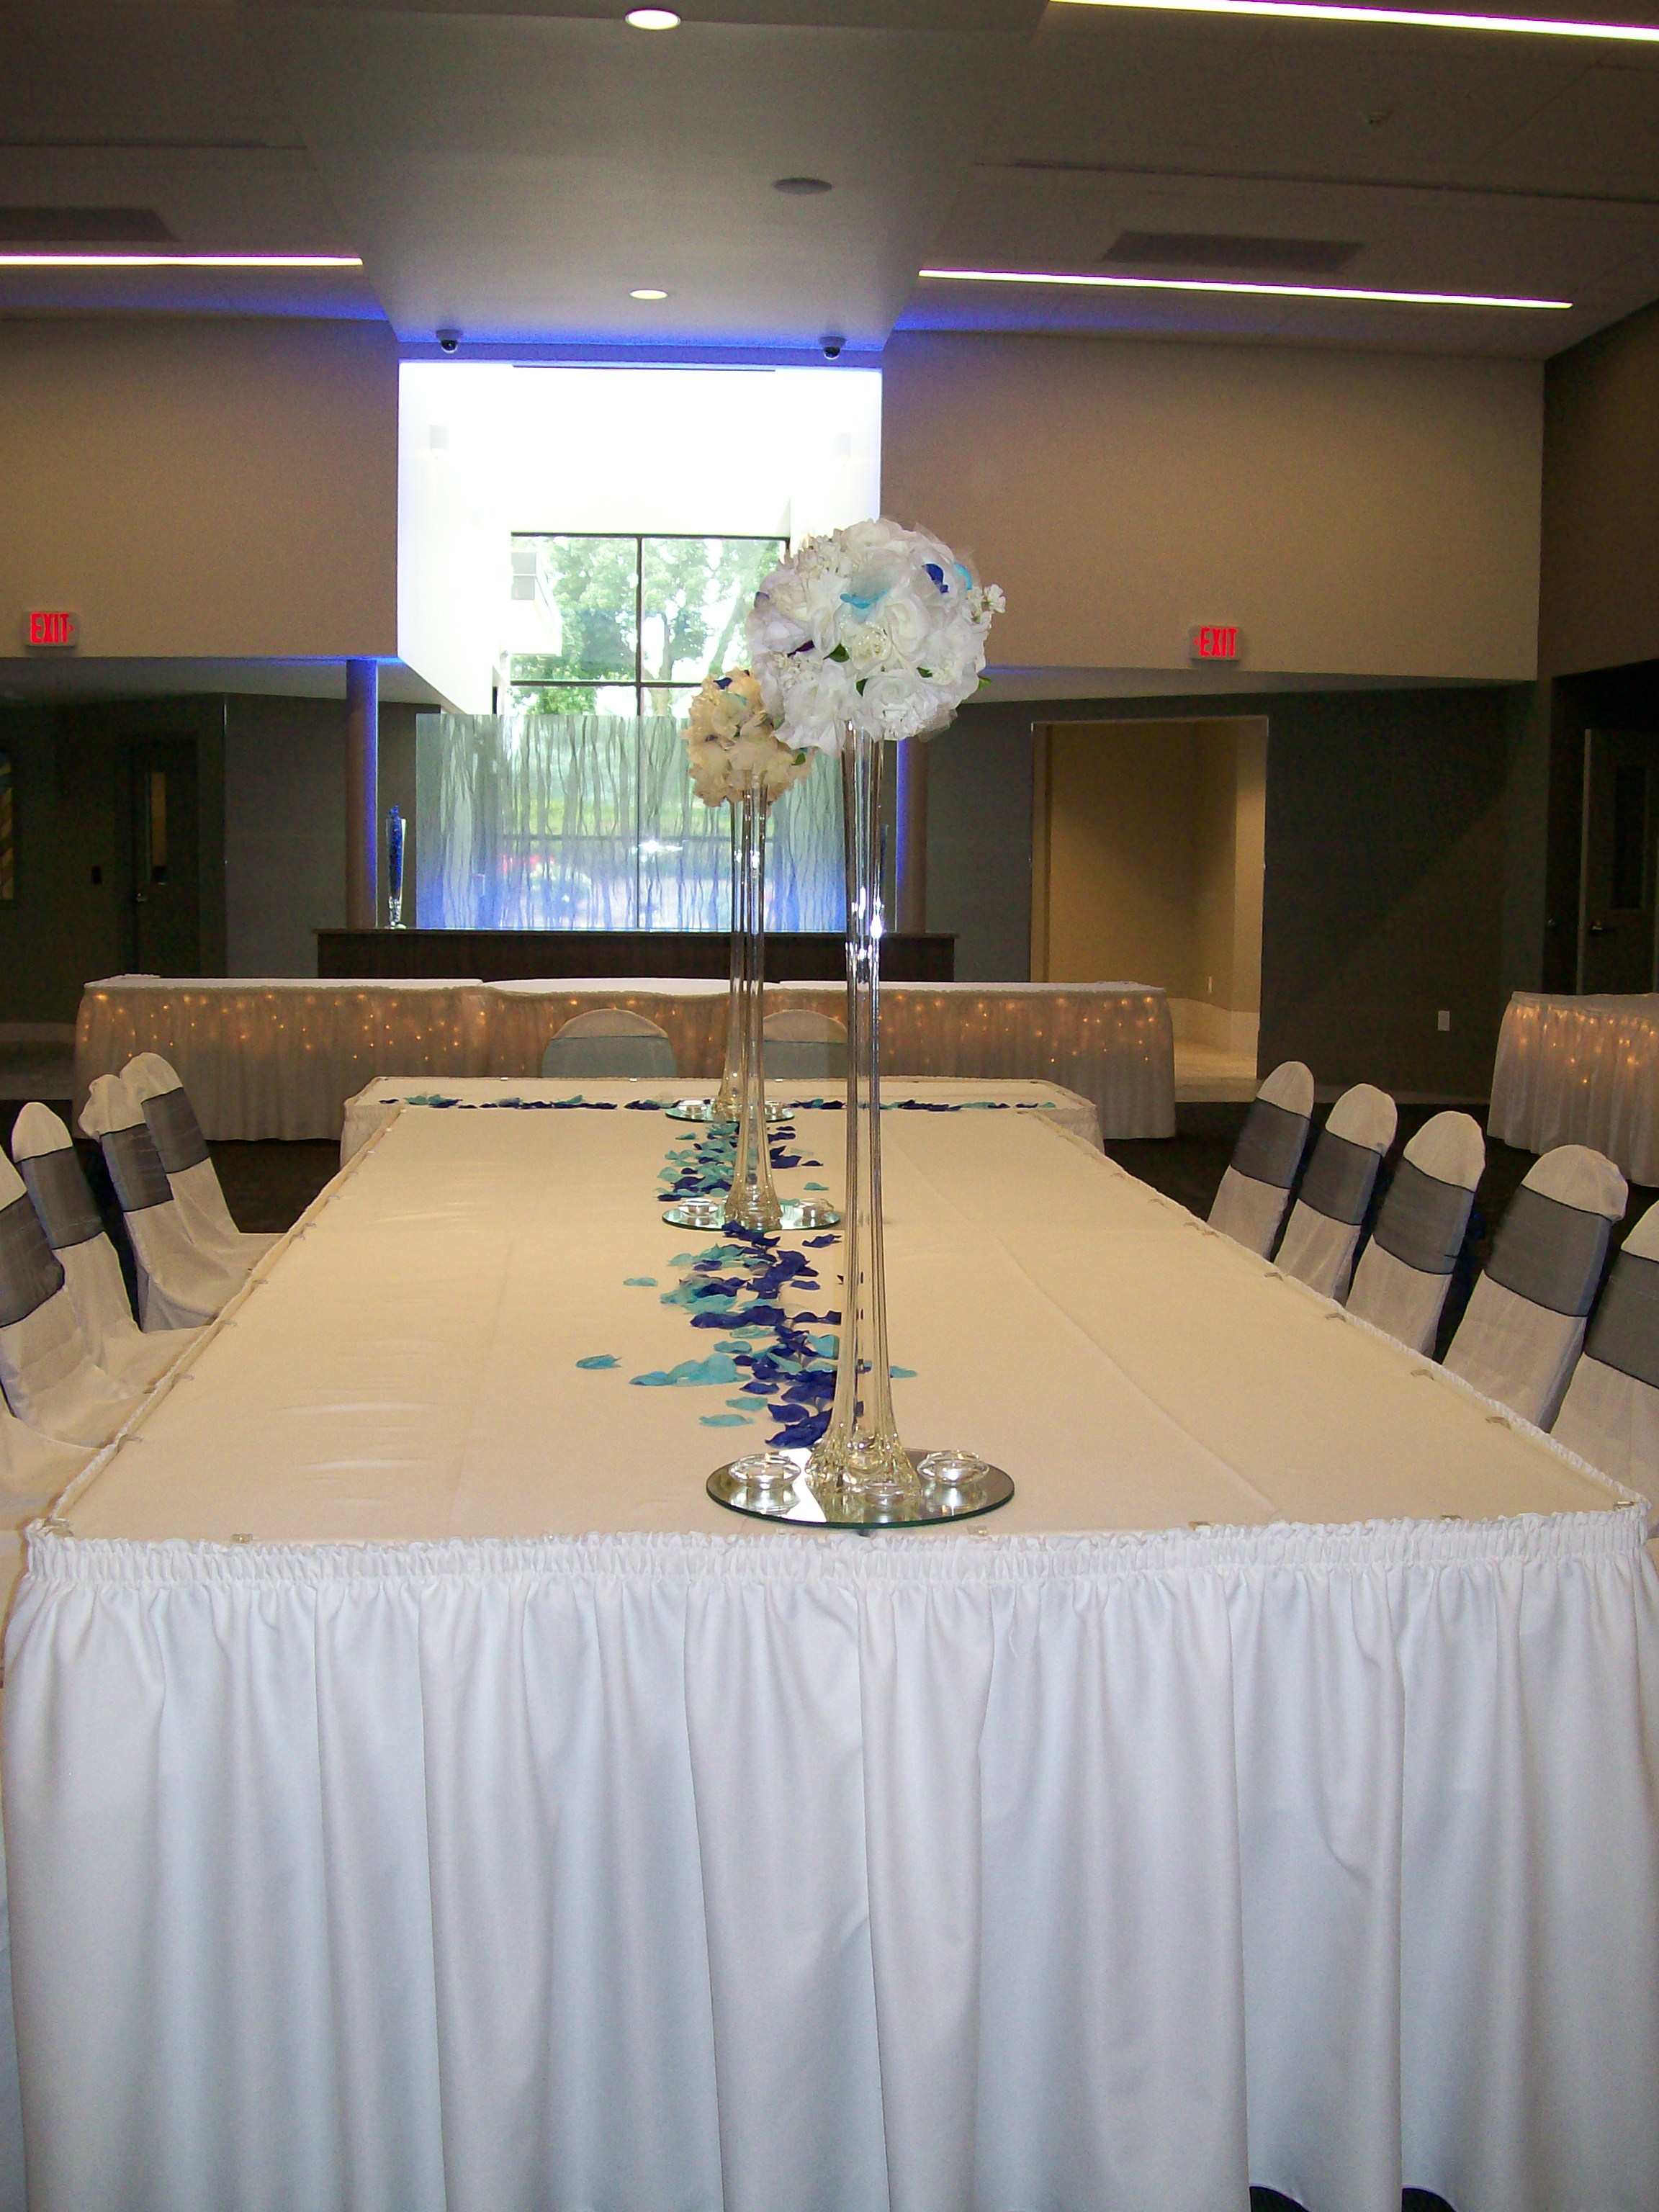 chair cover rentals quad cities covers victoria bc community center village of milan facility photos